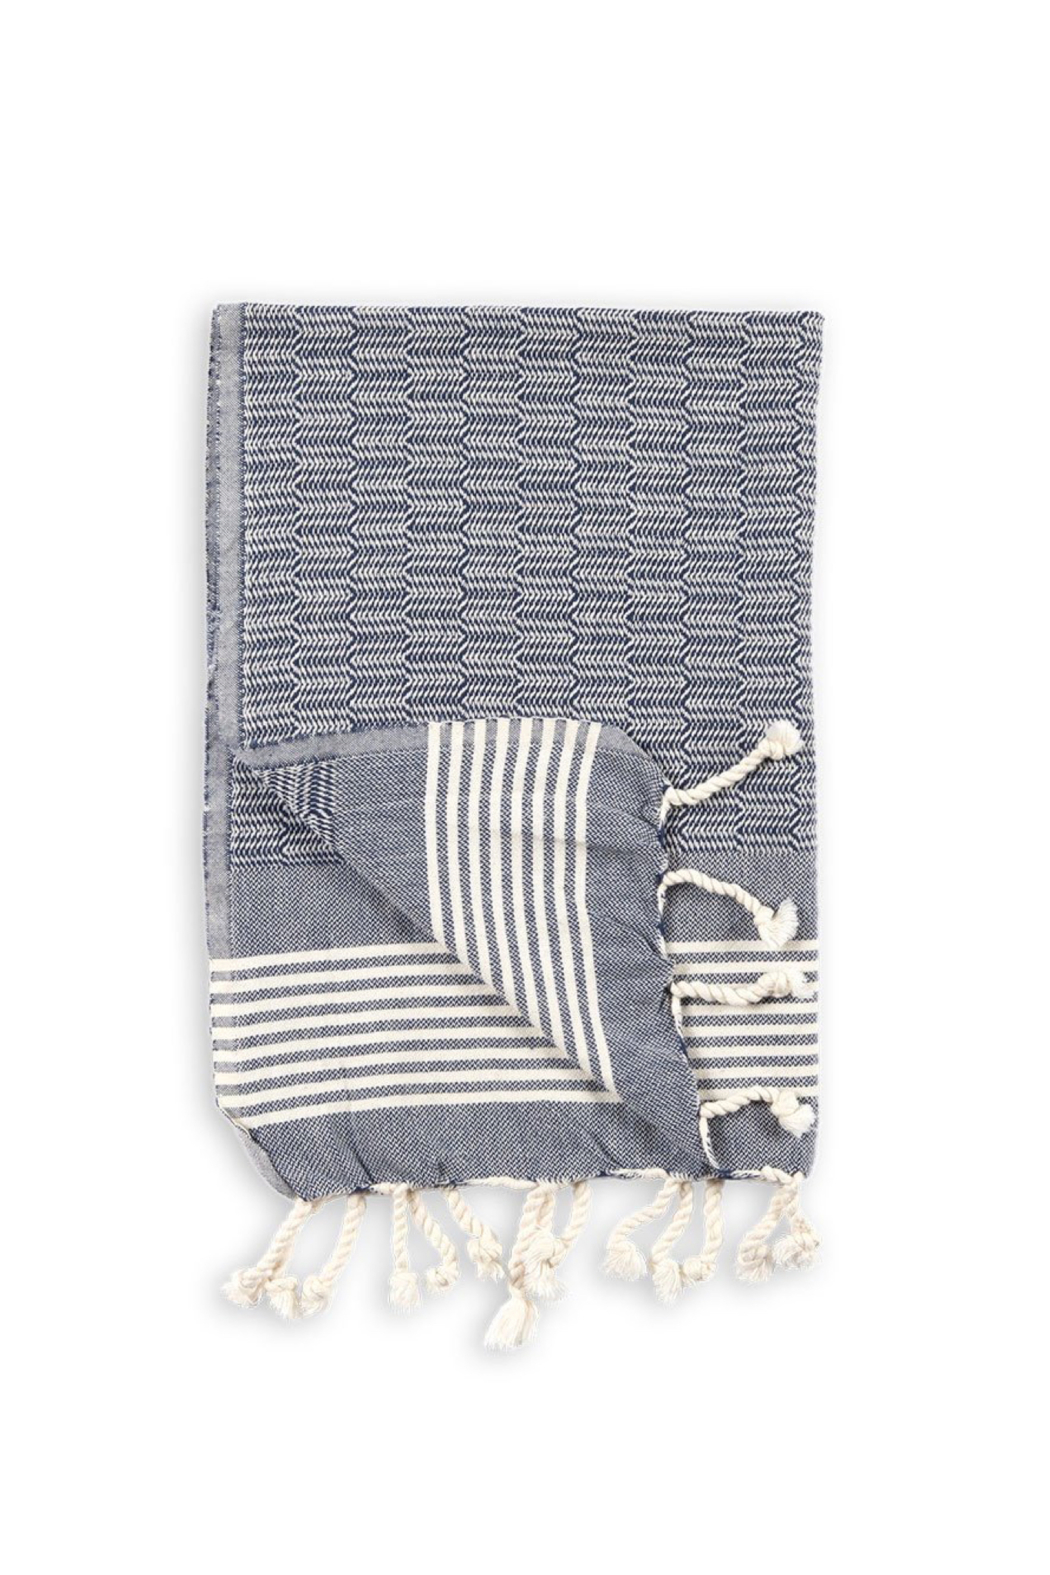 Pokoloko TEXTURED HAND TOWEL - Front Cropped Image